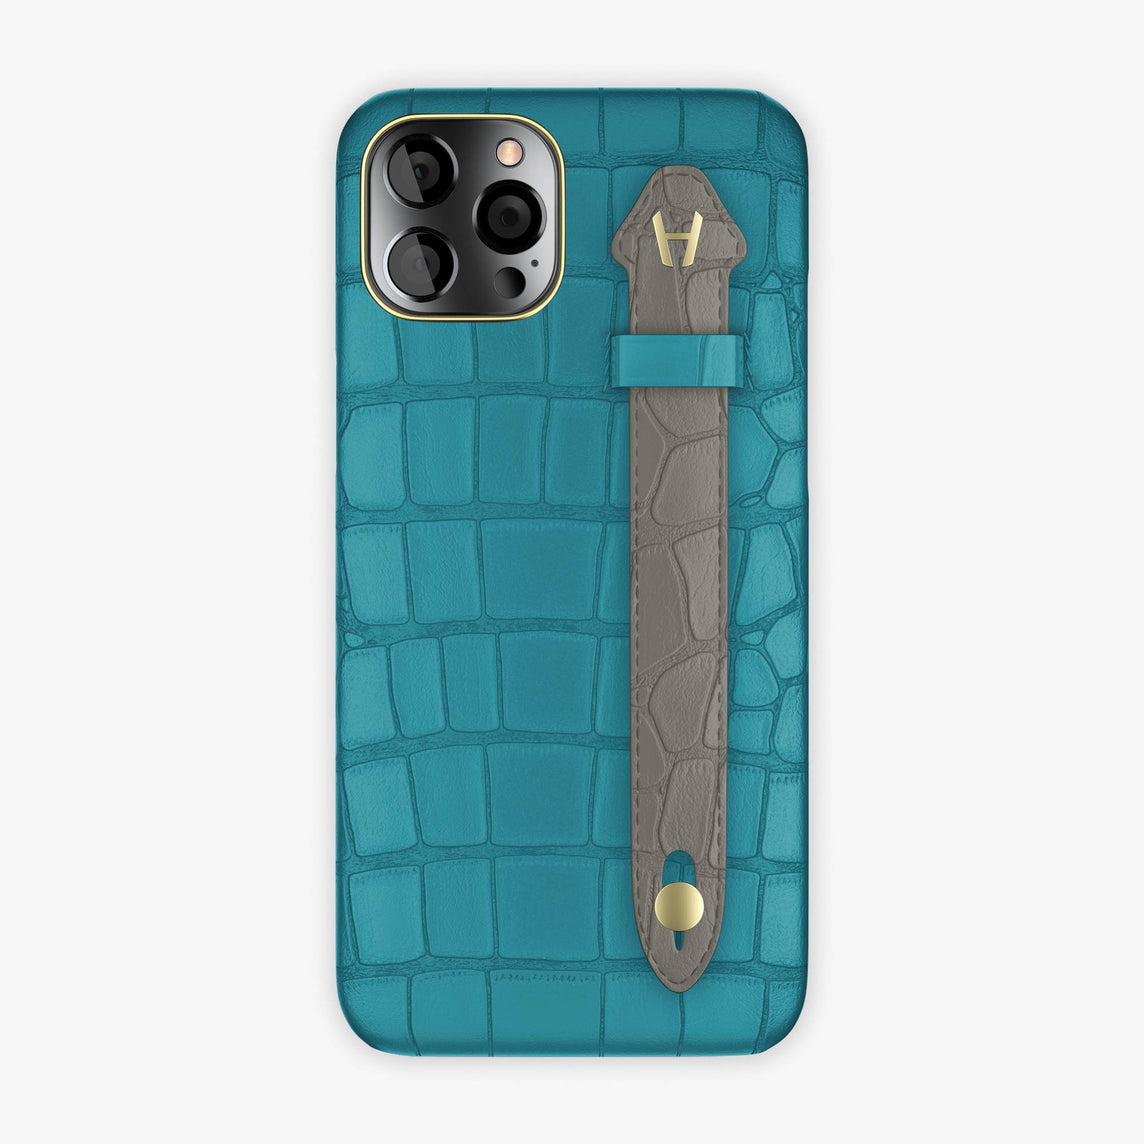 Alligator Side Finger Case iPhone 12 Pro Max | Blue Teal/Grey - Yellow Gold